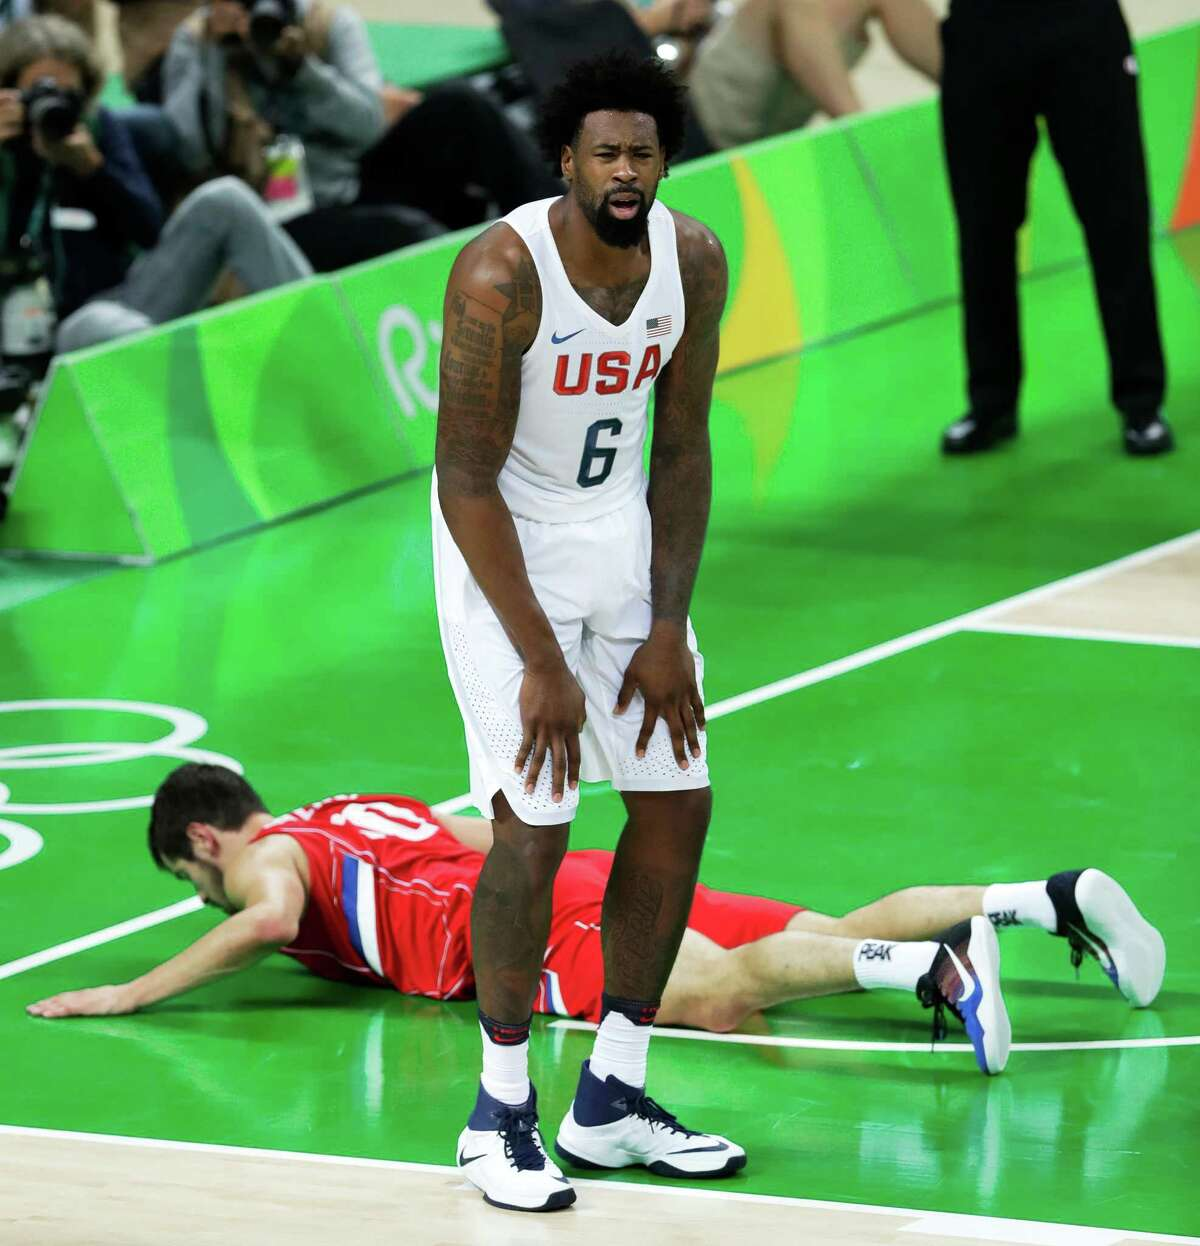 United States' DeAndre Jordan (6) reacts in front of Serbia's Nikola Kalinic after being called for a foul during a basketball game at the 2016 Summer Olympics in Rio de Janeiro, Brazil, Friday, Aug. 12, 2016.